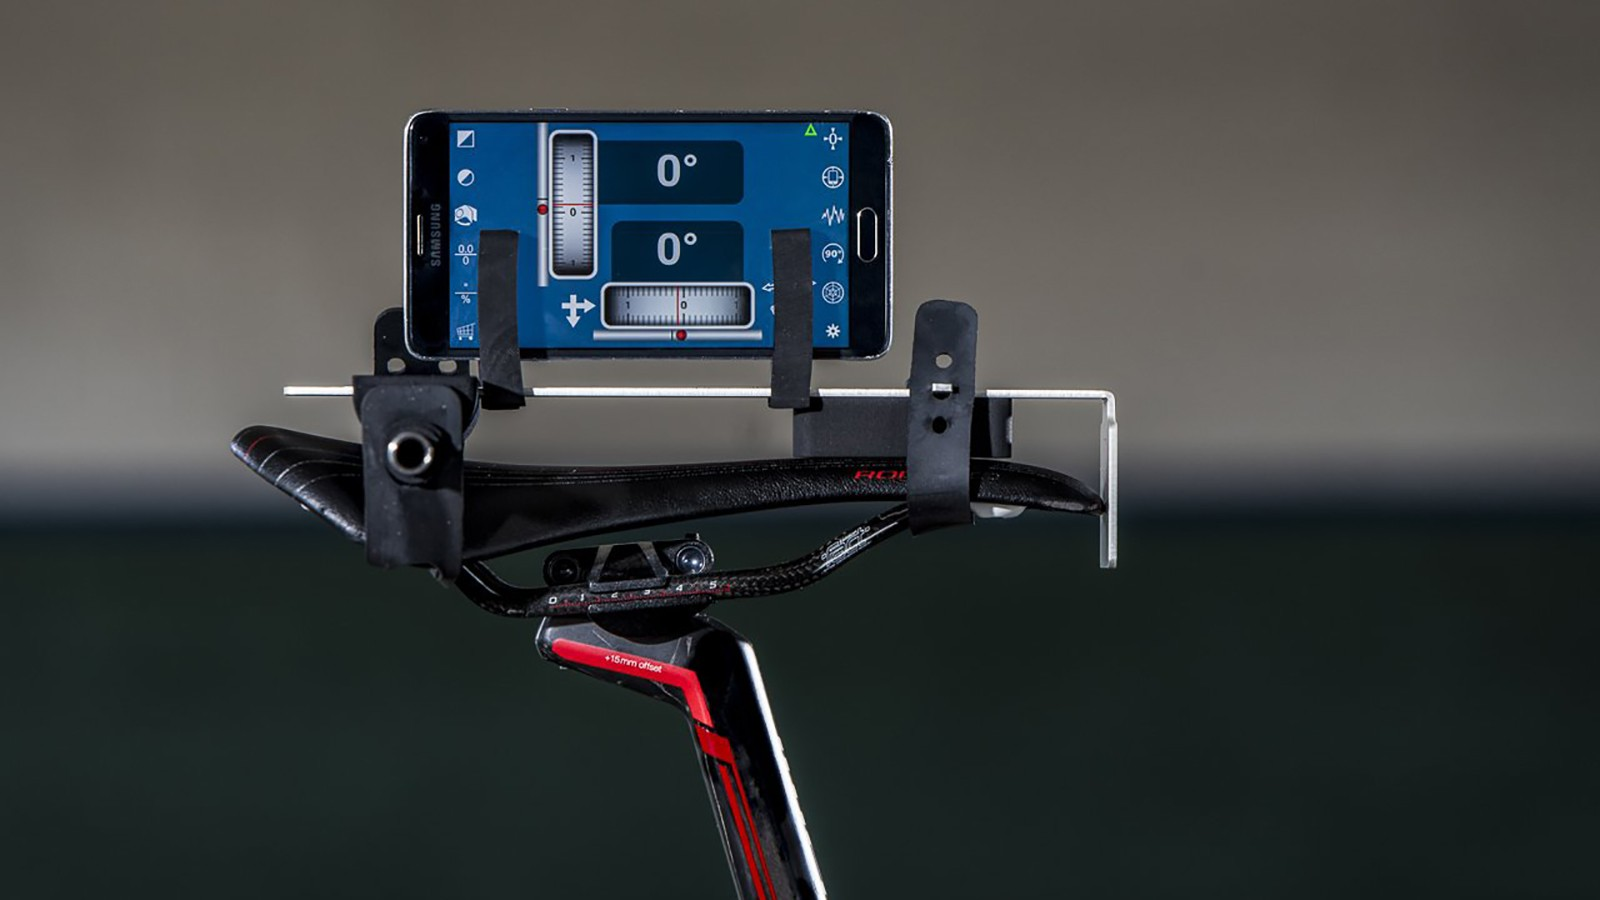 The saddle adaptor allows you to make measurements consistently